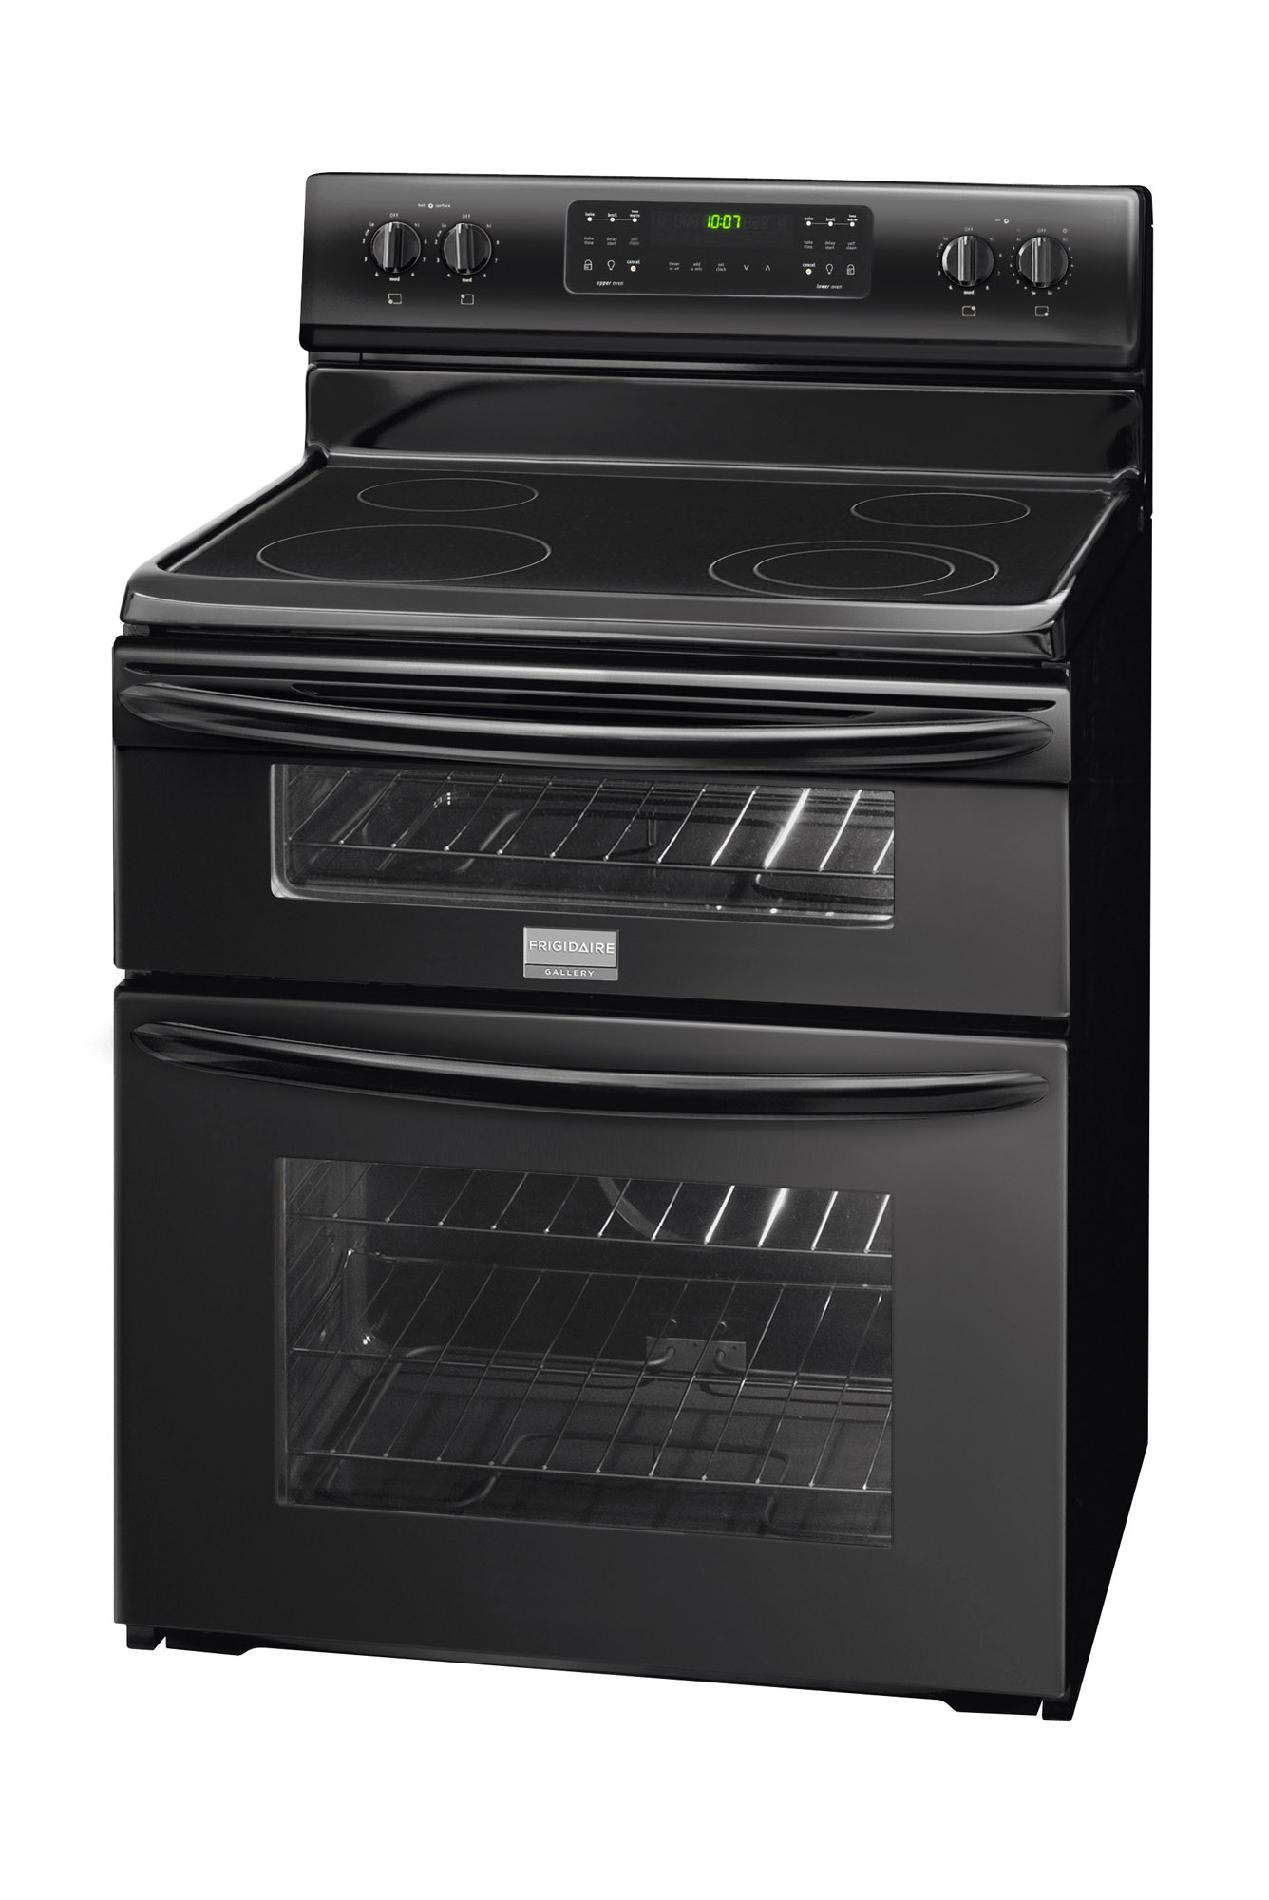 Frigidaire Gallery 6.64 cu. ft.Double-Oven Electric Range - Black